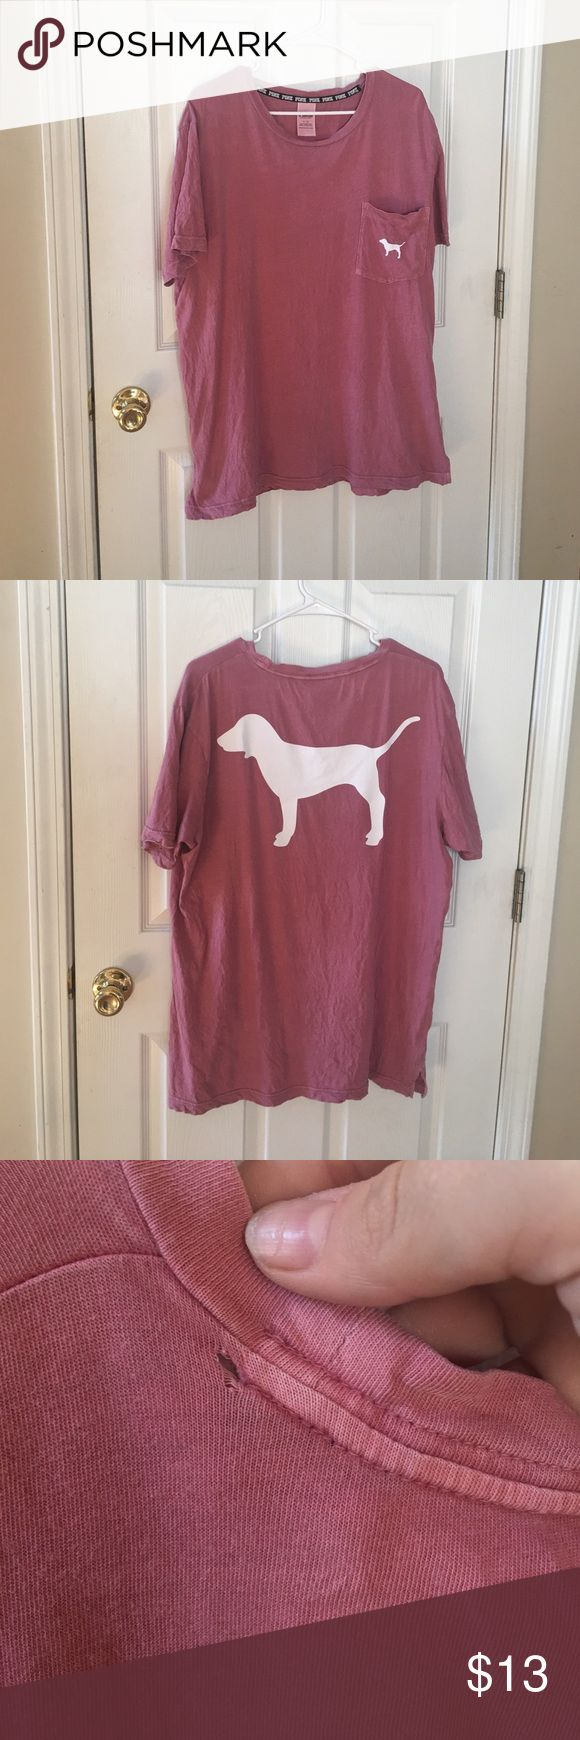 PINK t shirt 💕 Salmon/pink color shirt! Worn a few times! Has a small and tiny hole near the back neck line but nothing else wrong with it! PINK Victoria's Secret Tops Tees - Short Sleeve